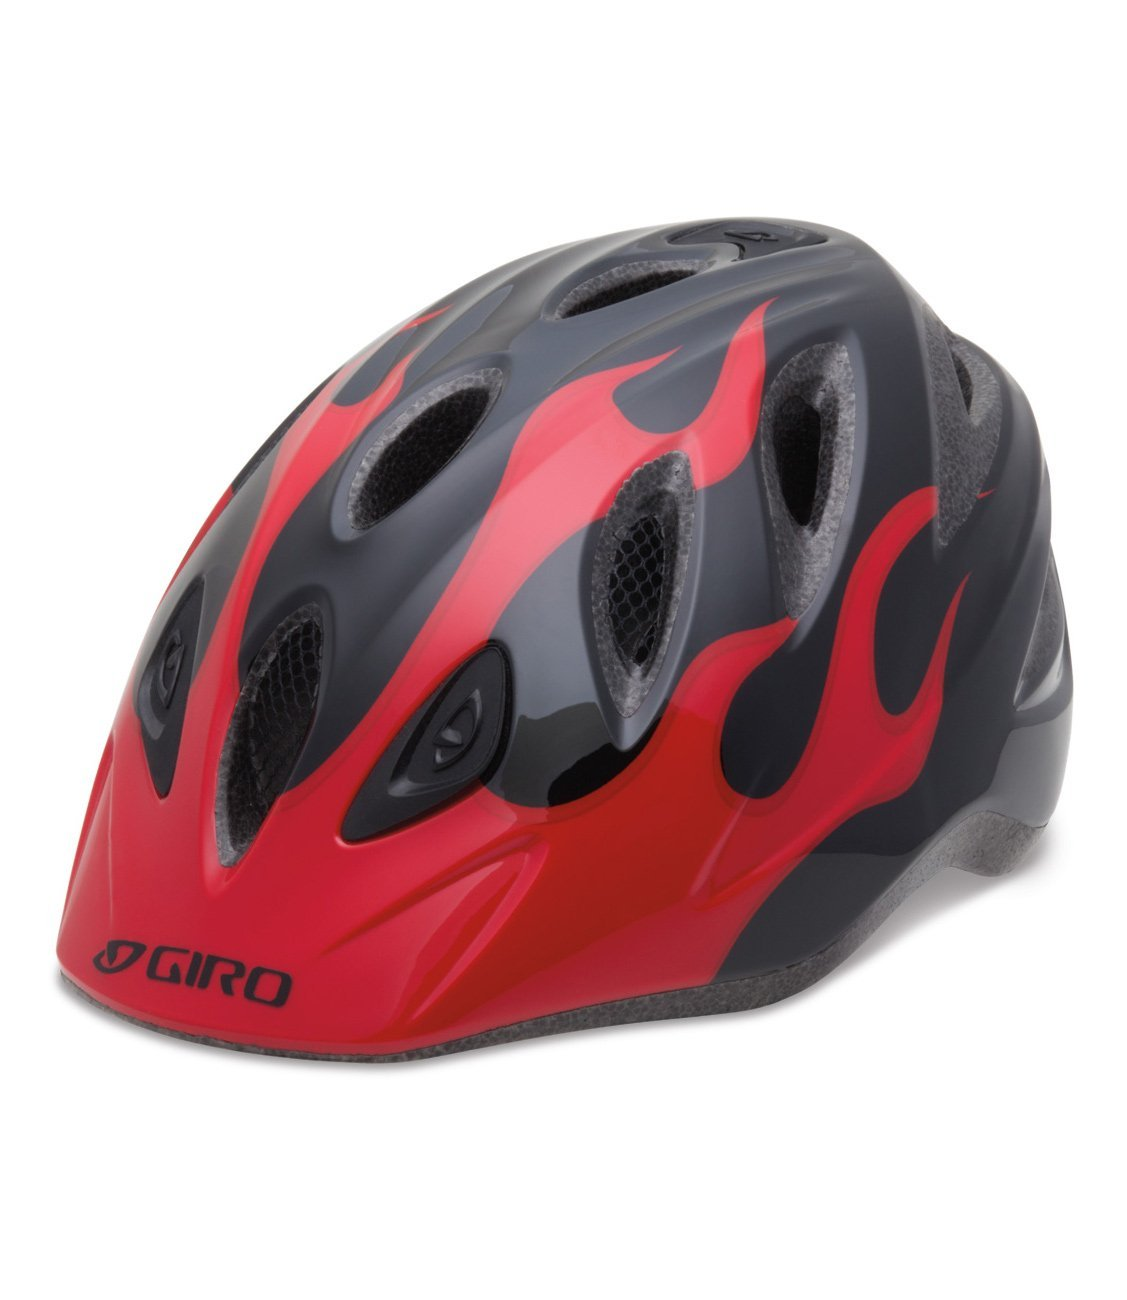 Small Giro Bicycle Helmets